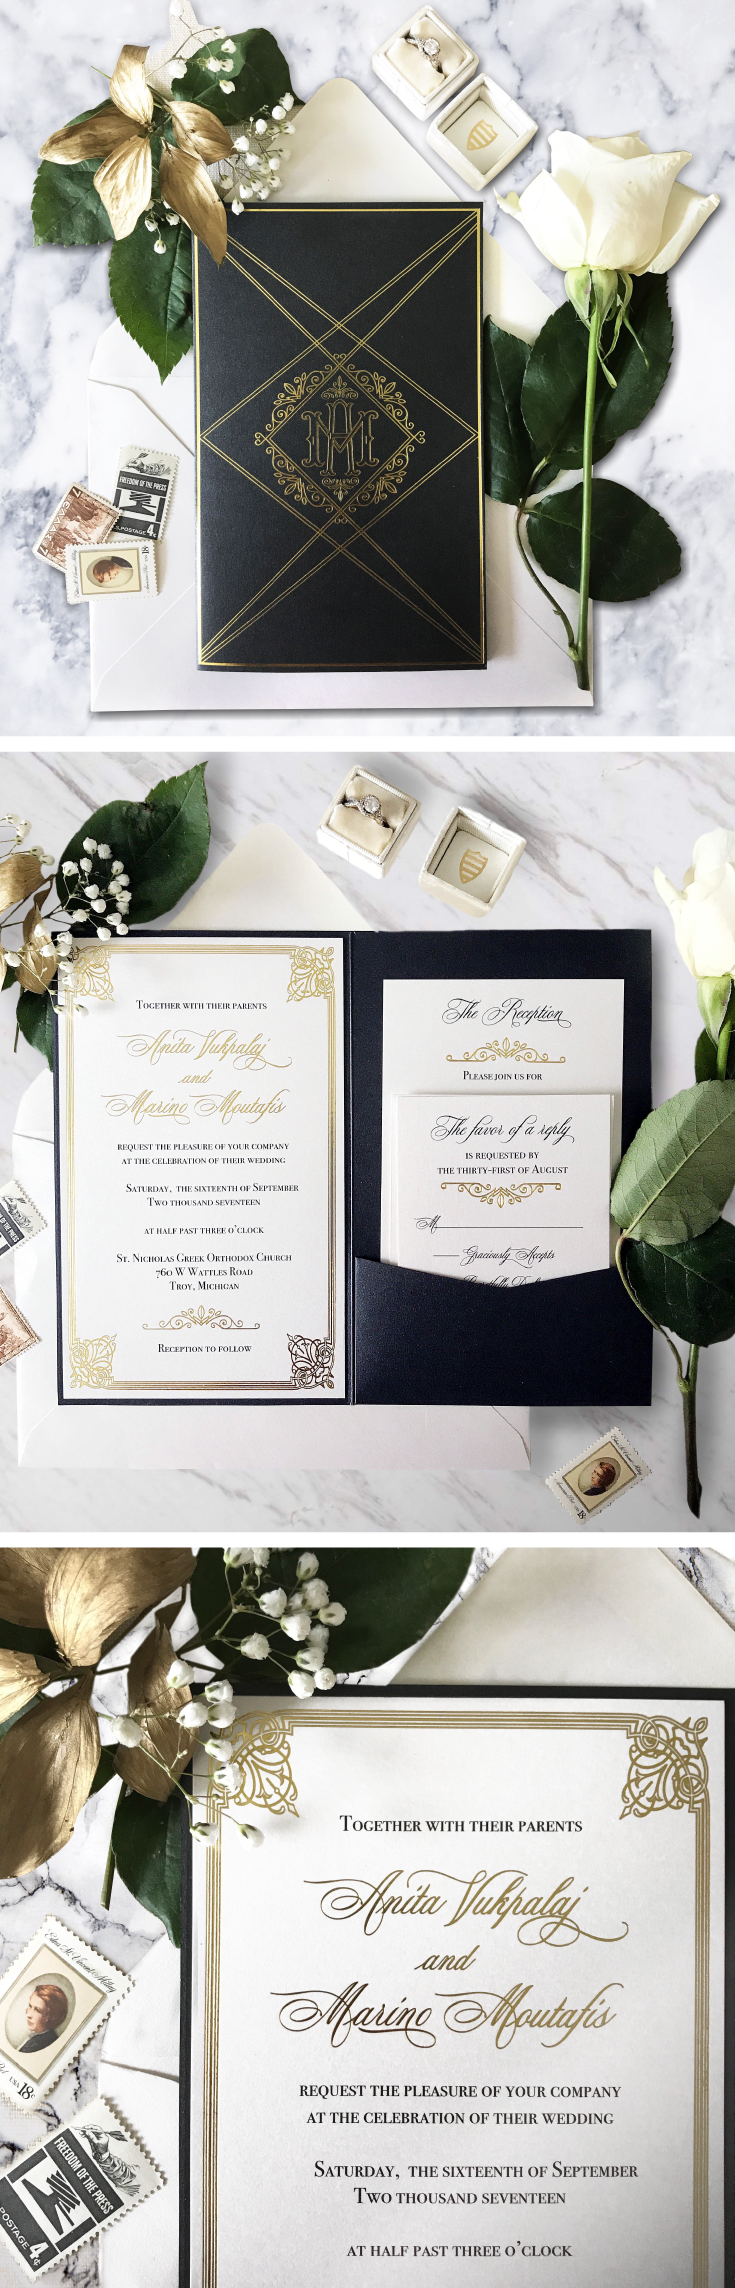 An art deco and Great Gatsby inspired wedding invitation suite ...